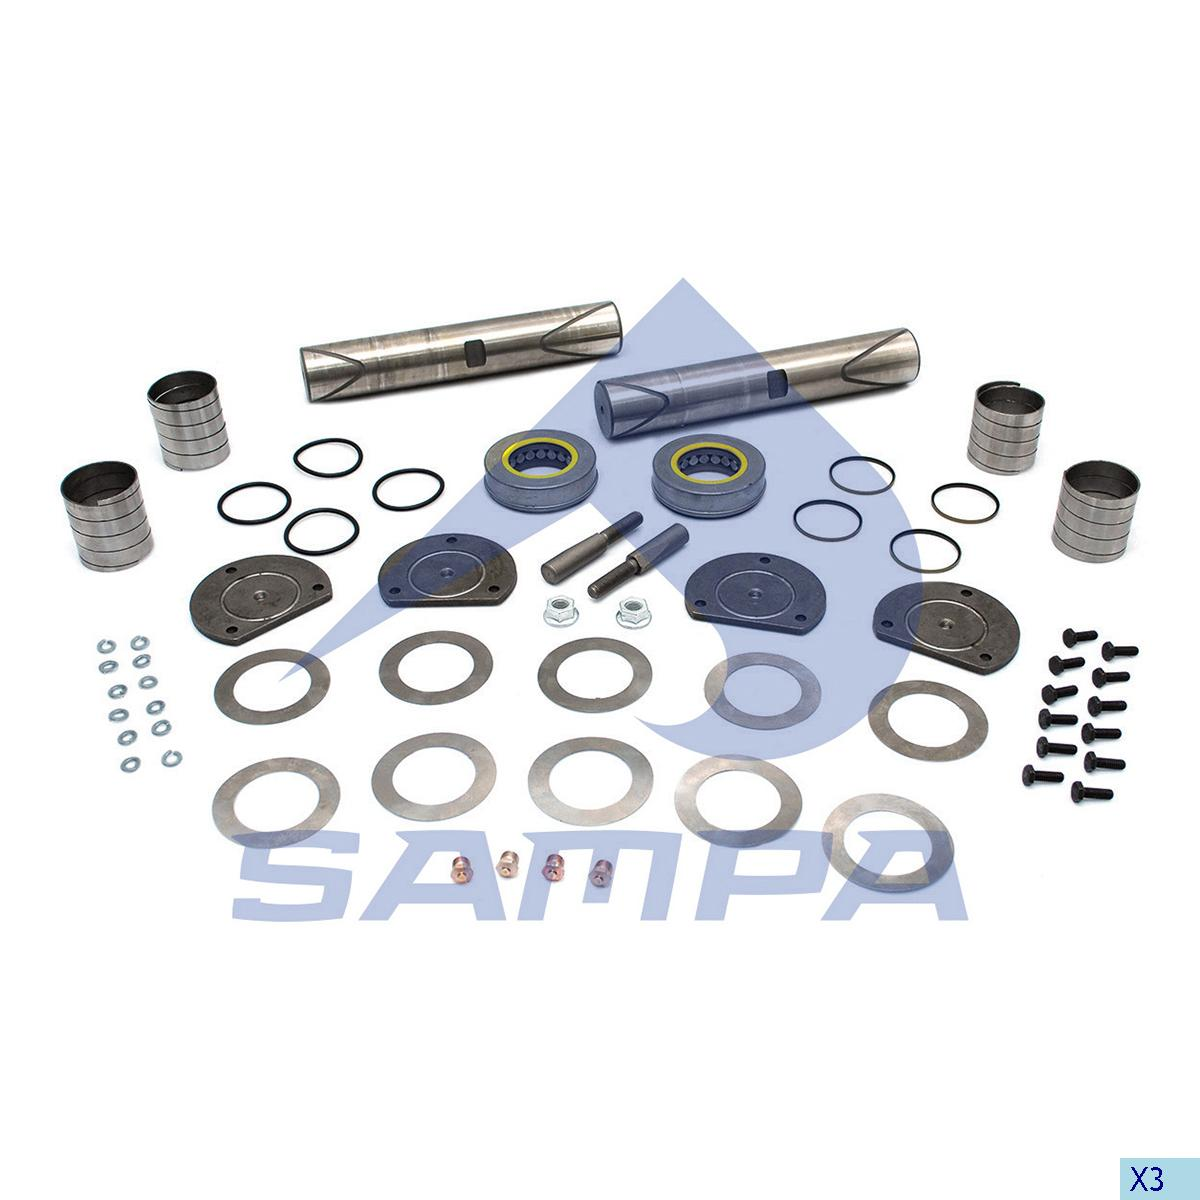 King Pin Kit, Axle Steering Knuckle, Power Unit